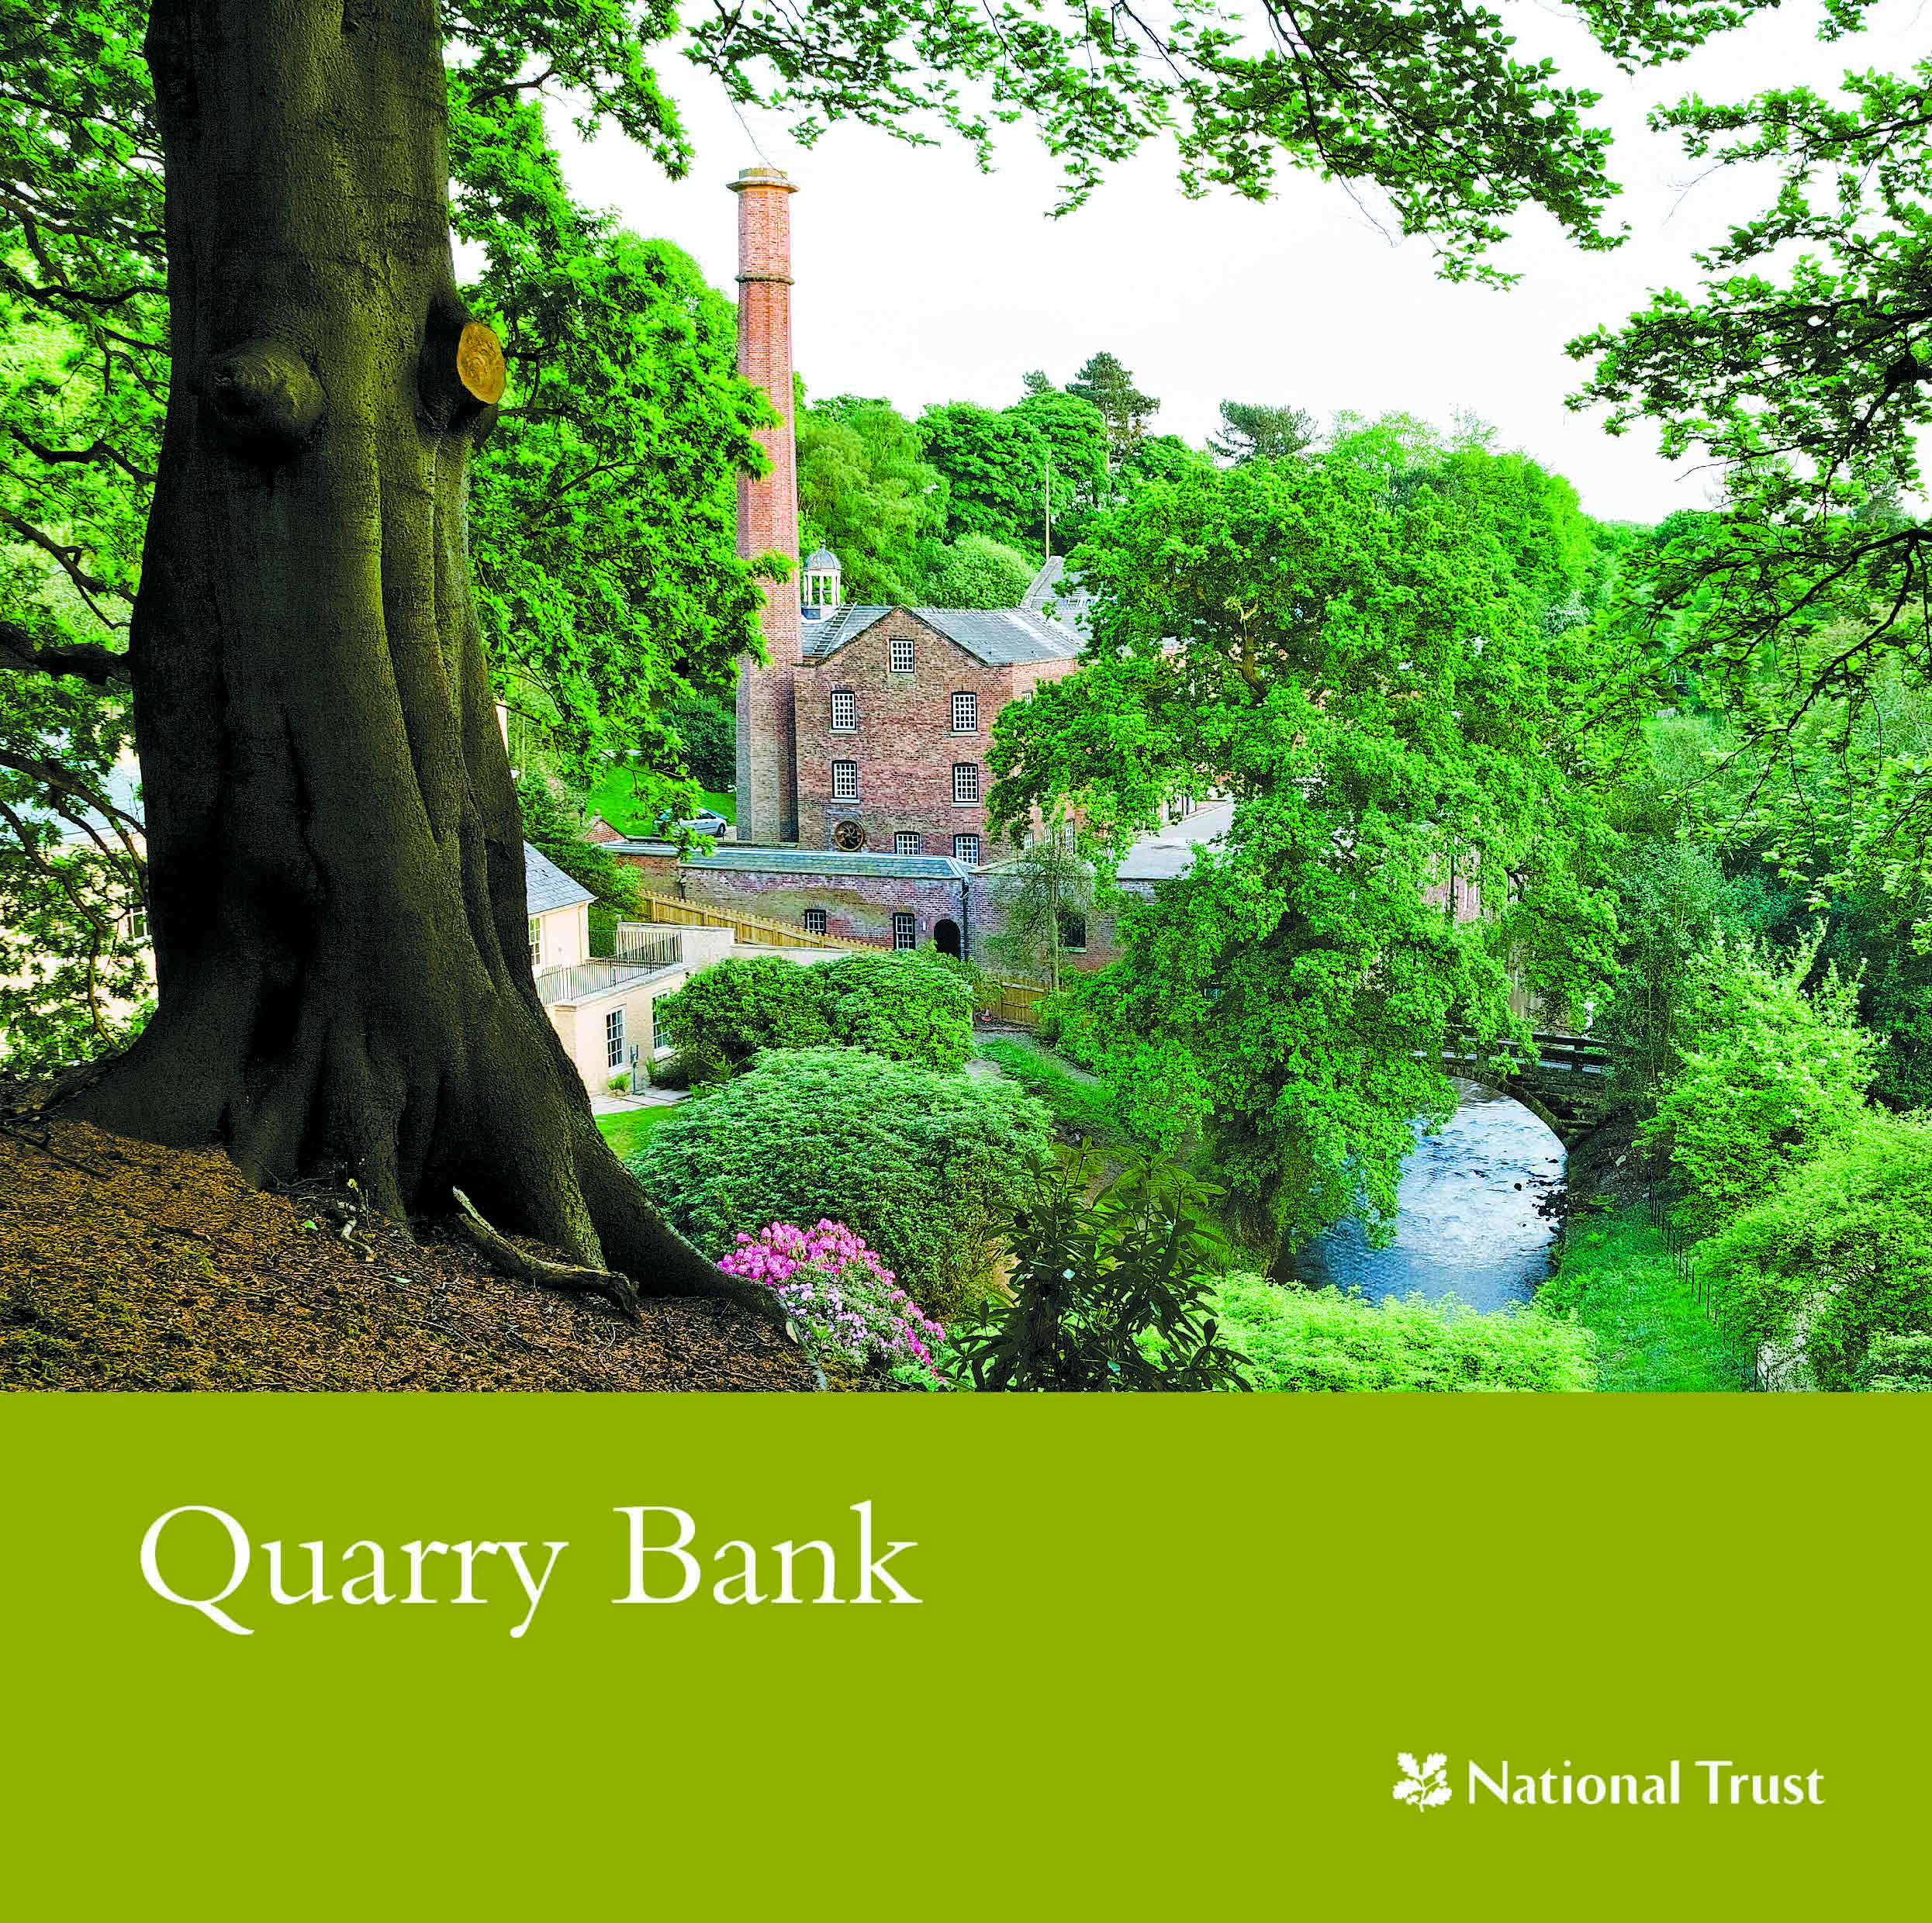 Quarry Bank